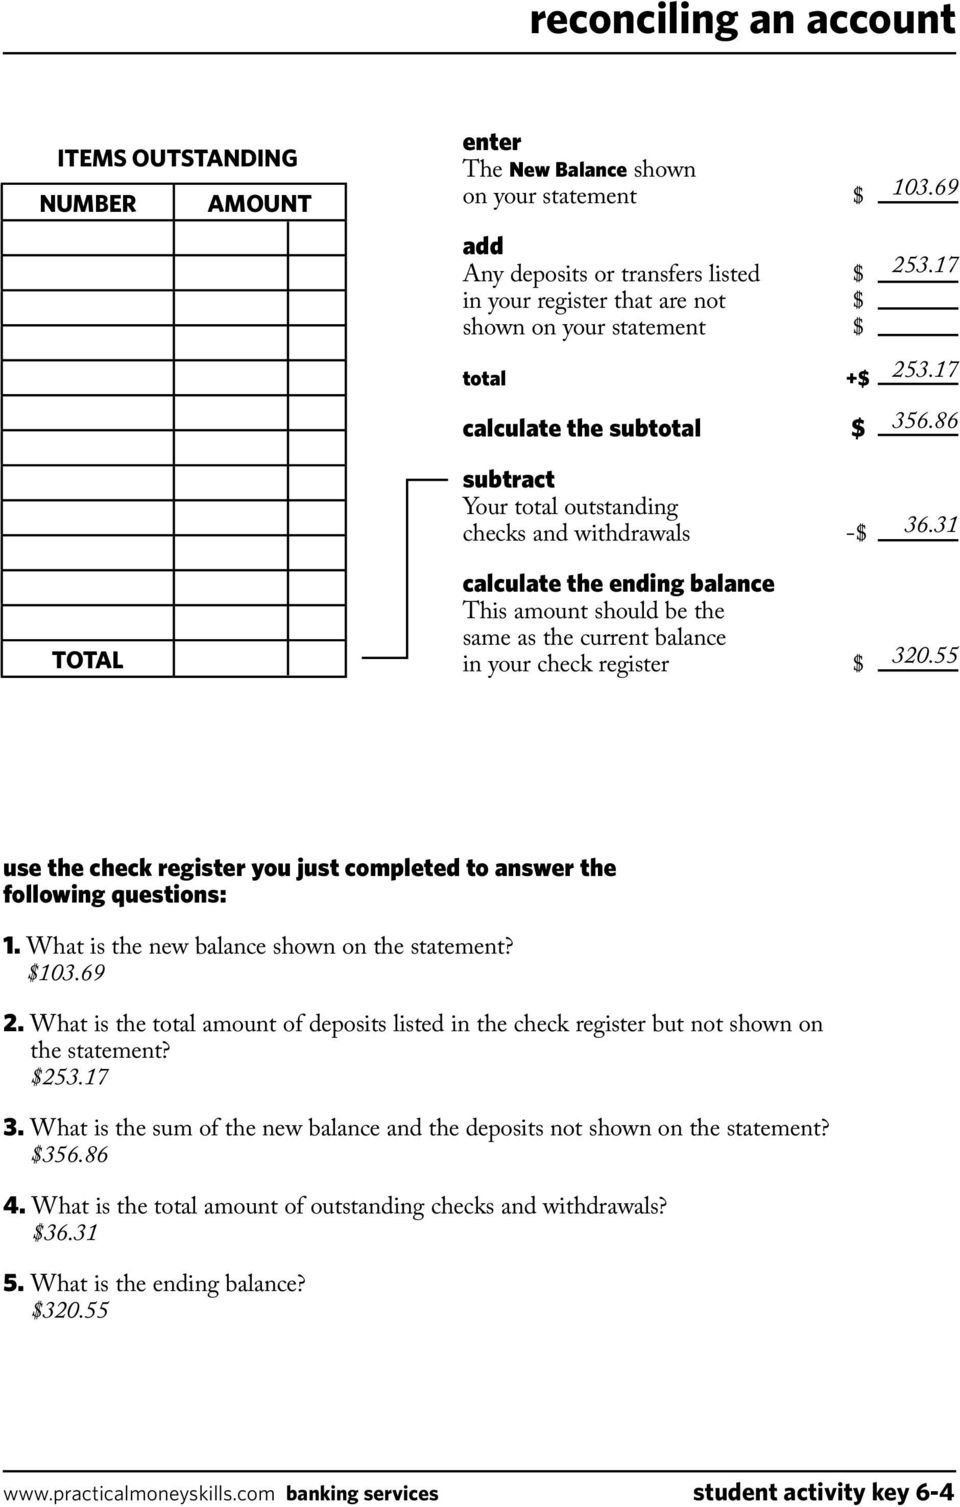 Keeping A Running Balance Answer Key  Pdf As Well As Reconciling A Checking Account Worksheet Answers